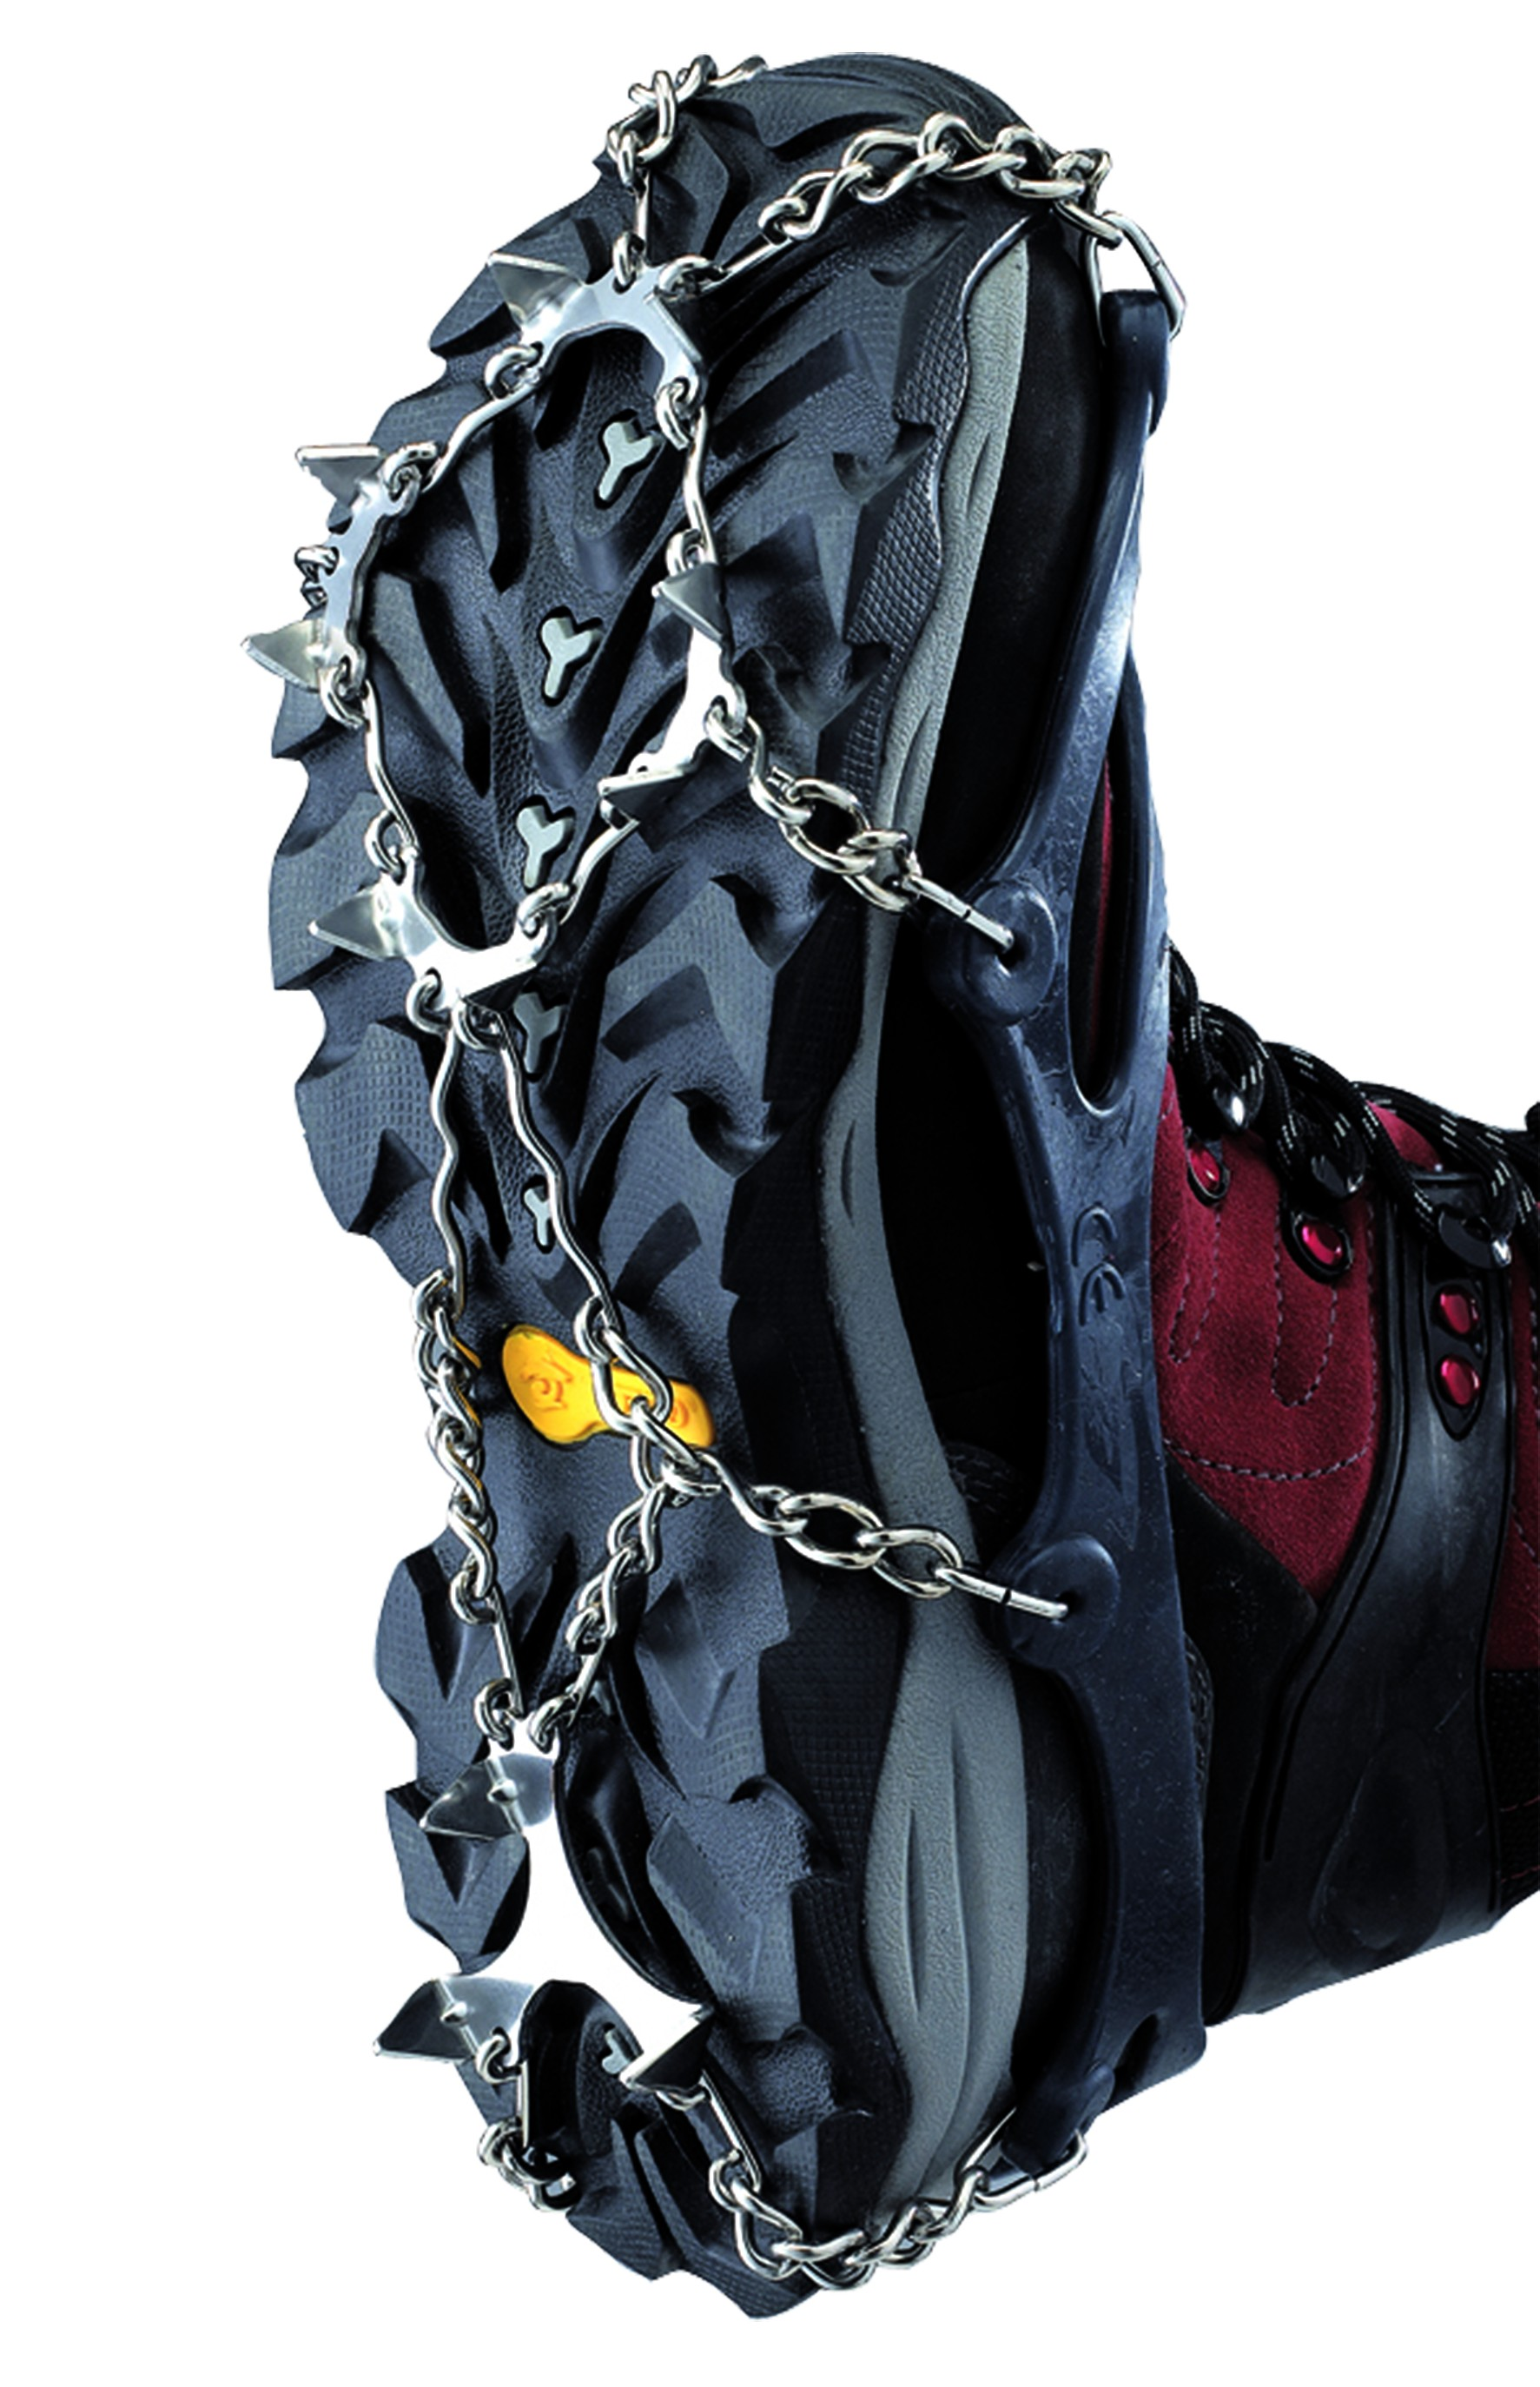 Chain crampons for winter boots